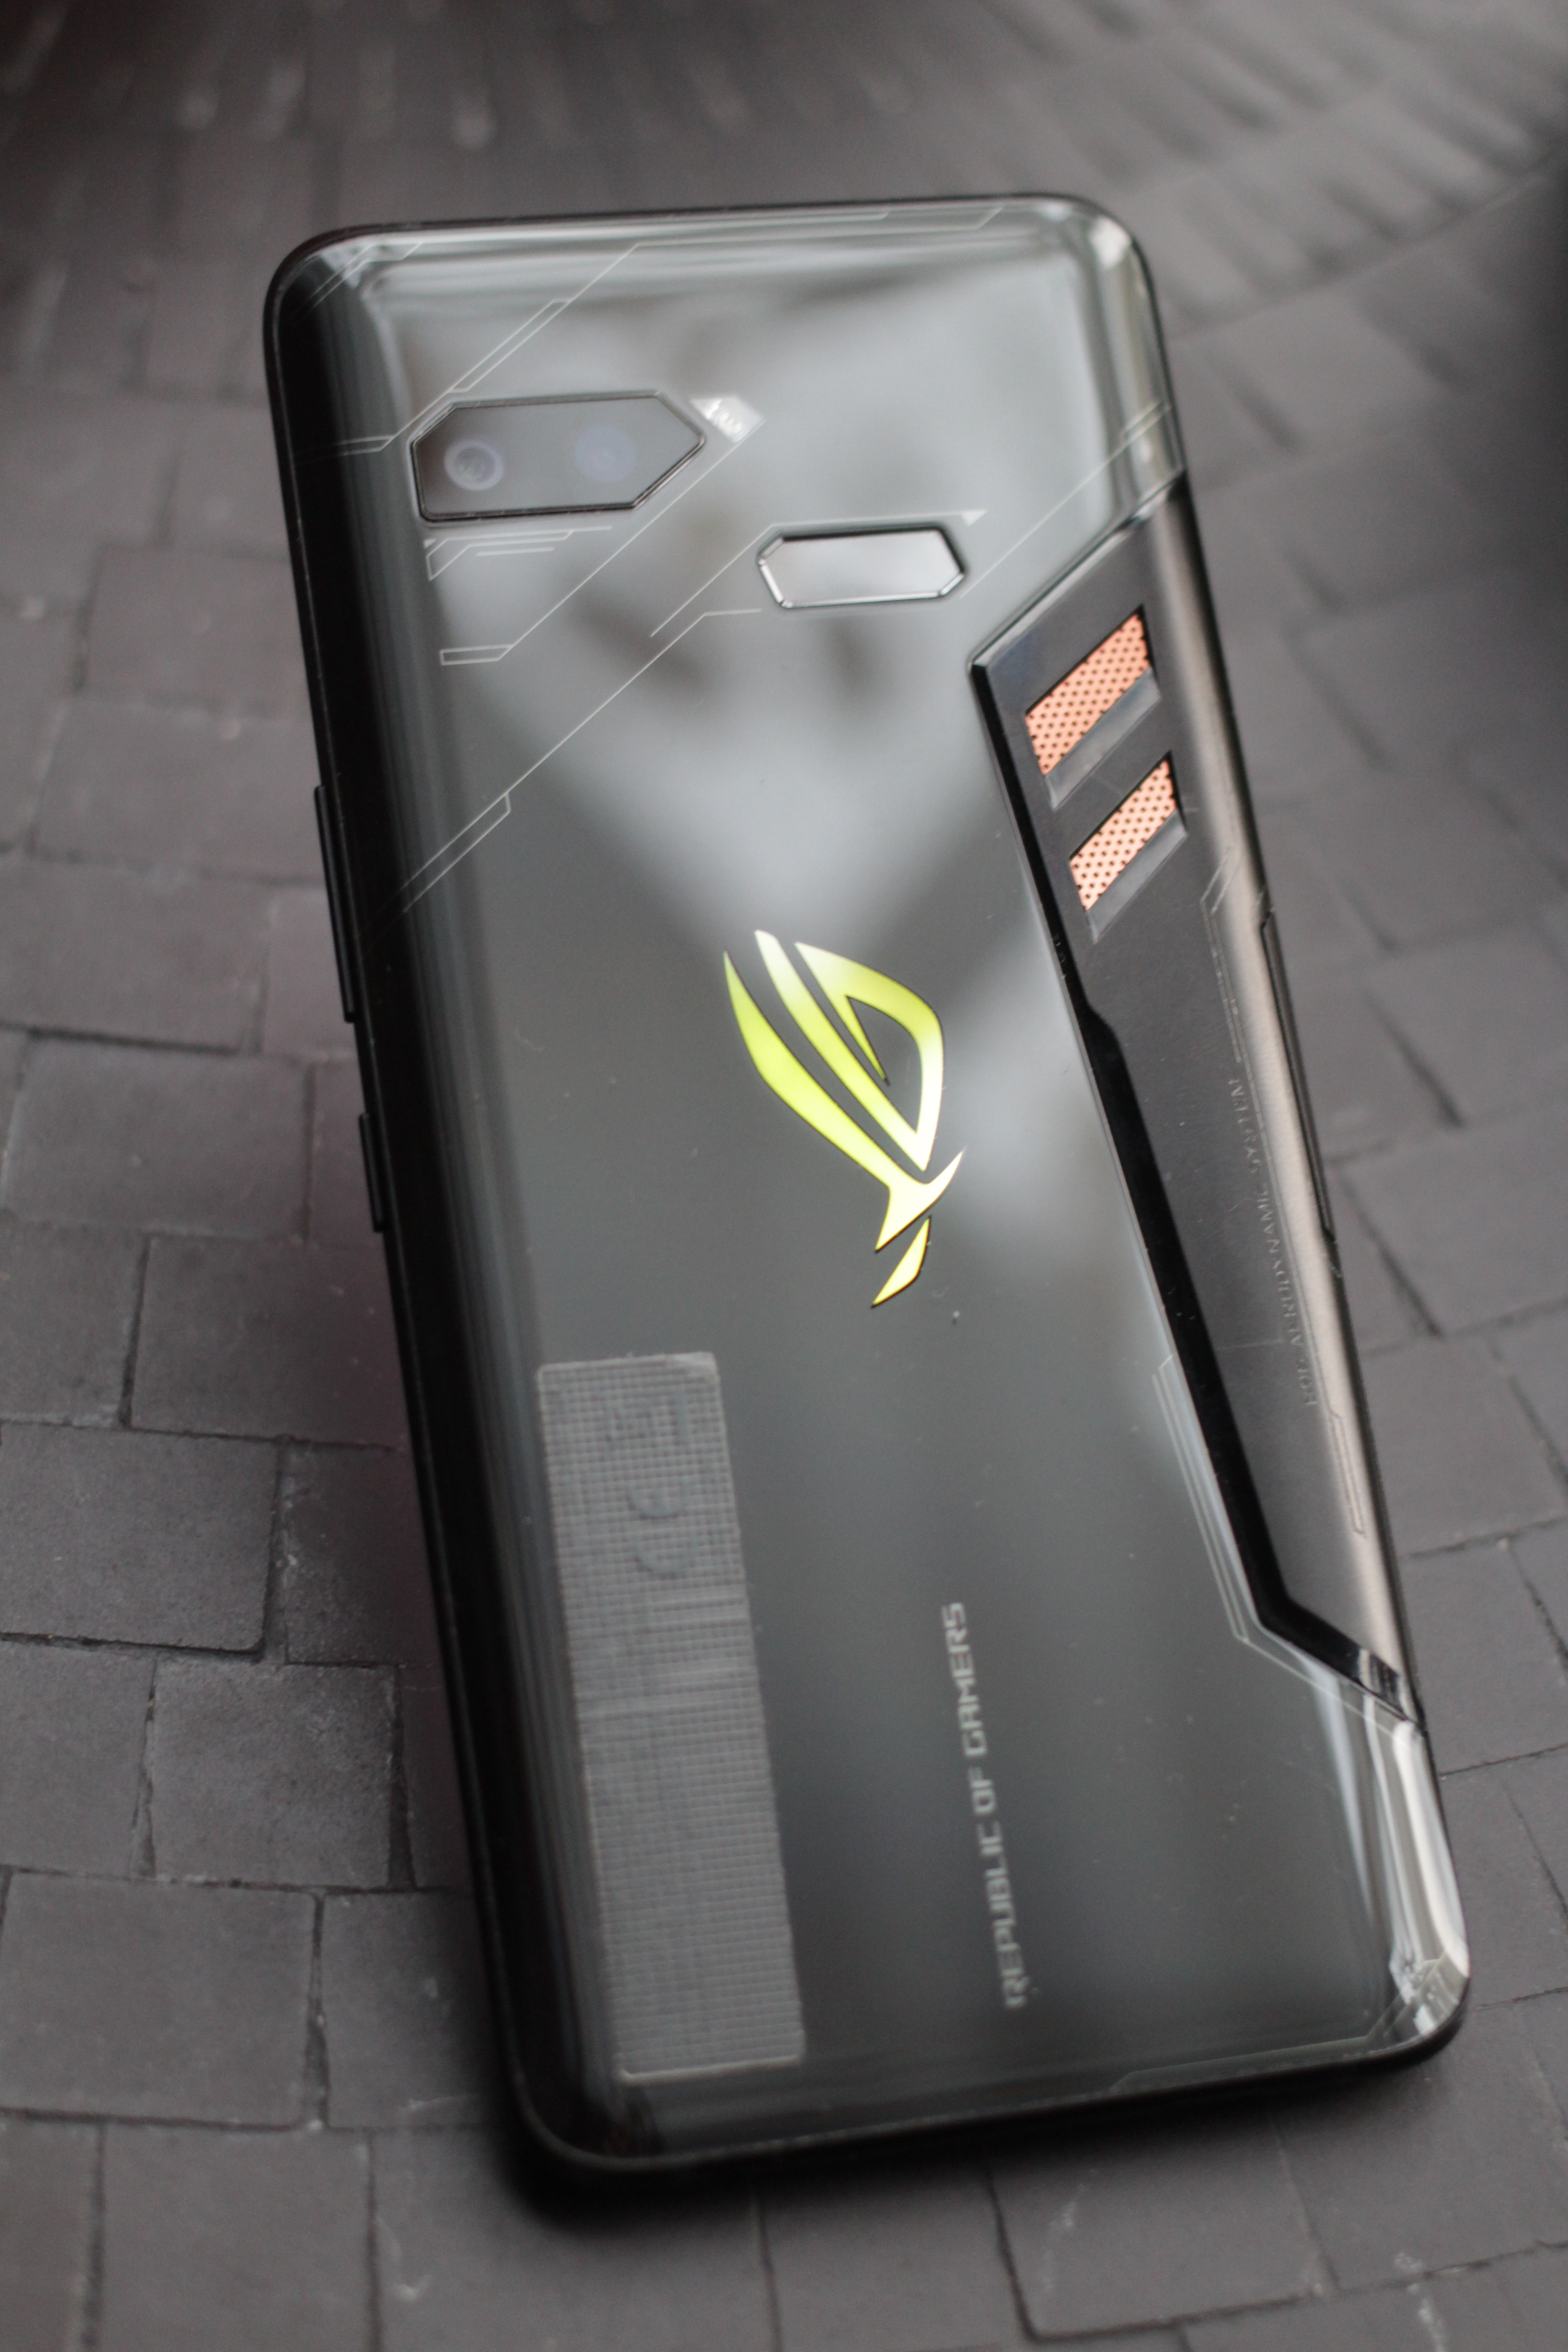 ASUS ROG Phone Smartphone Review - NotebookCheck.net Reviews